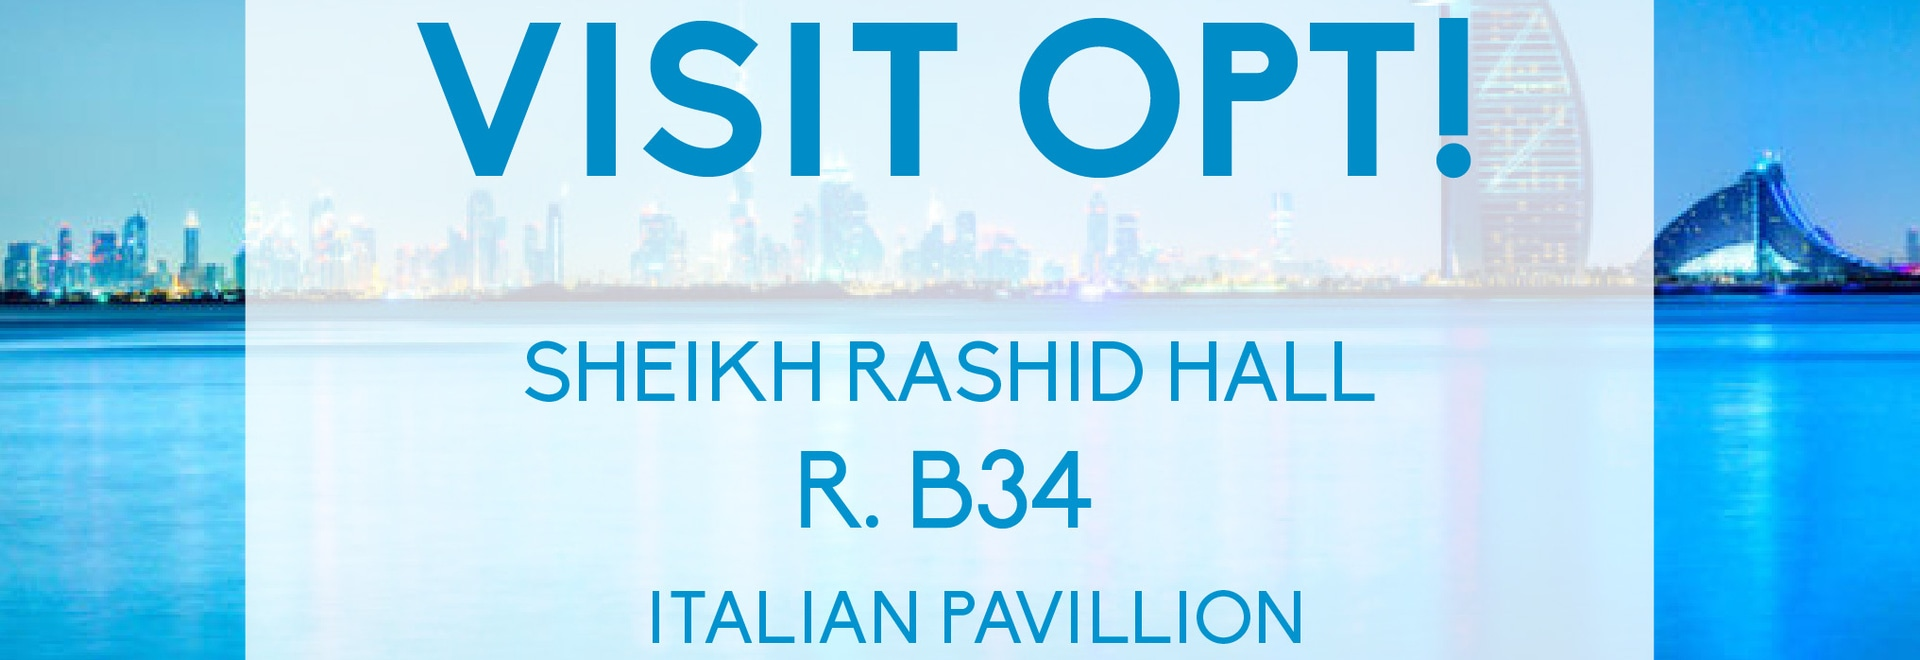 OPT at Arab Health Dubai